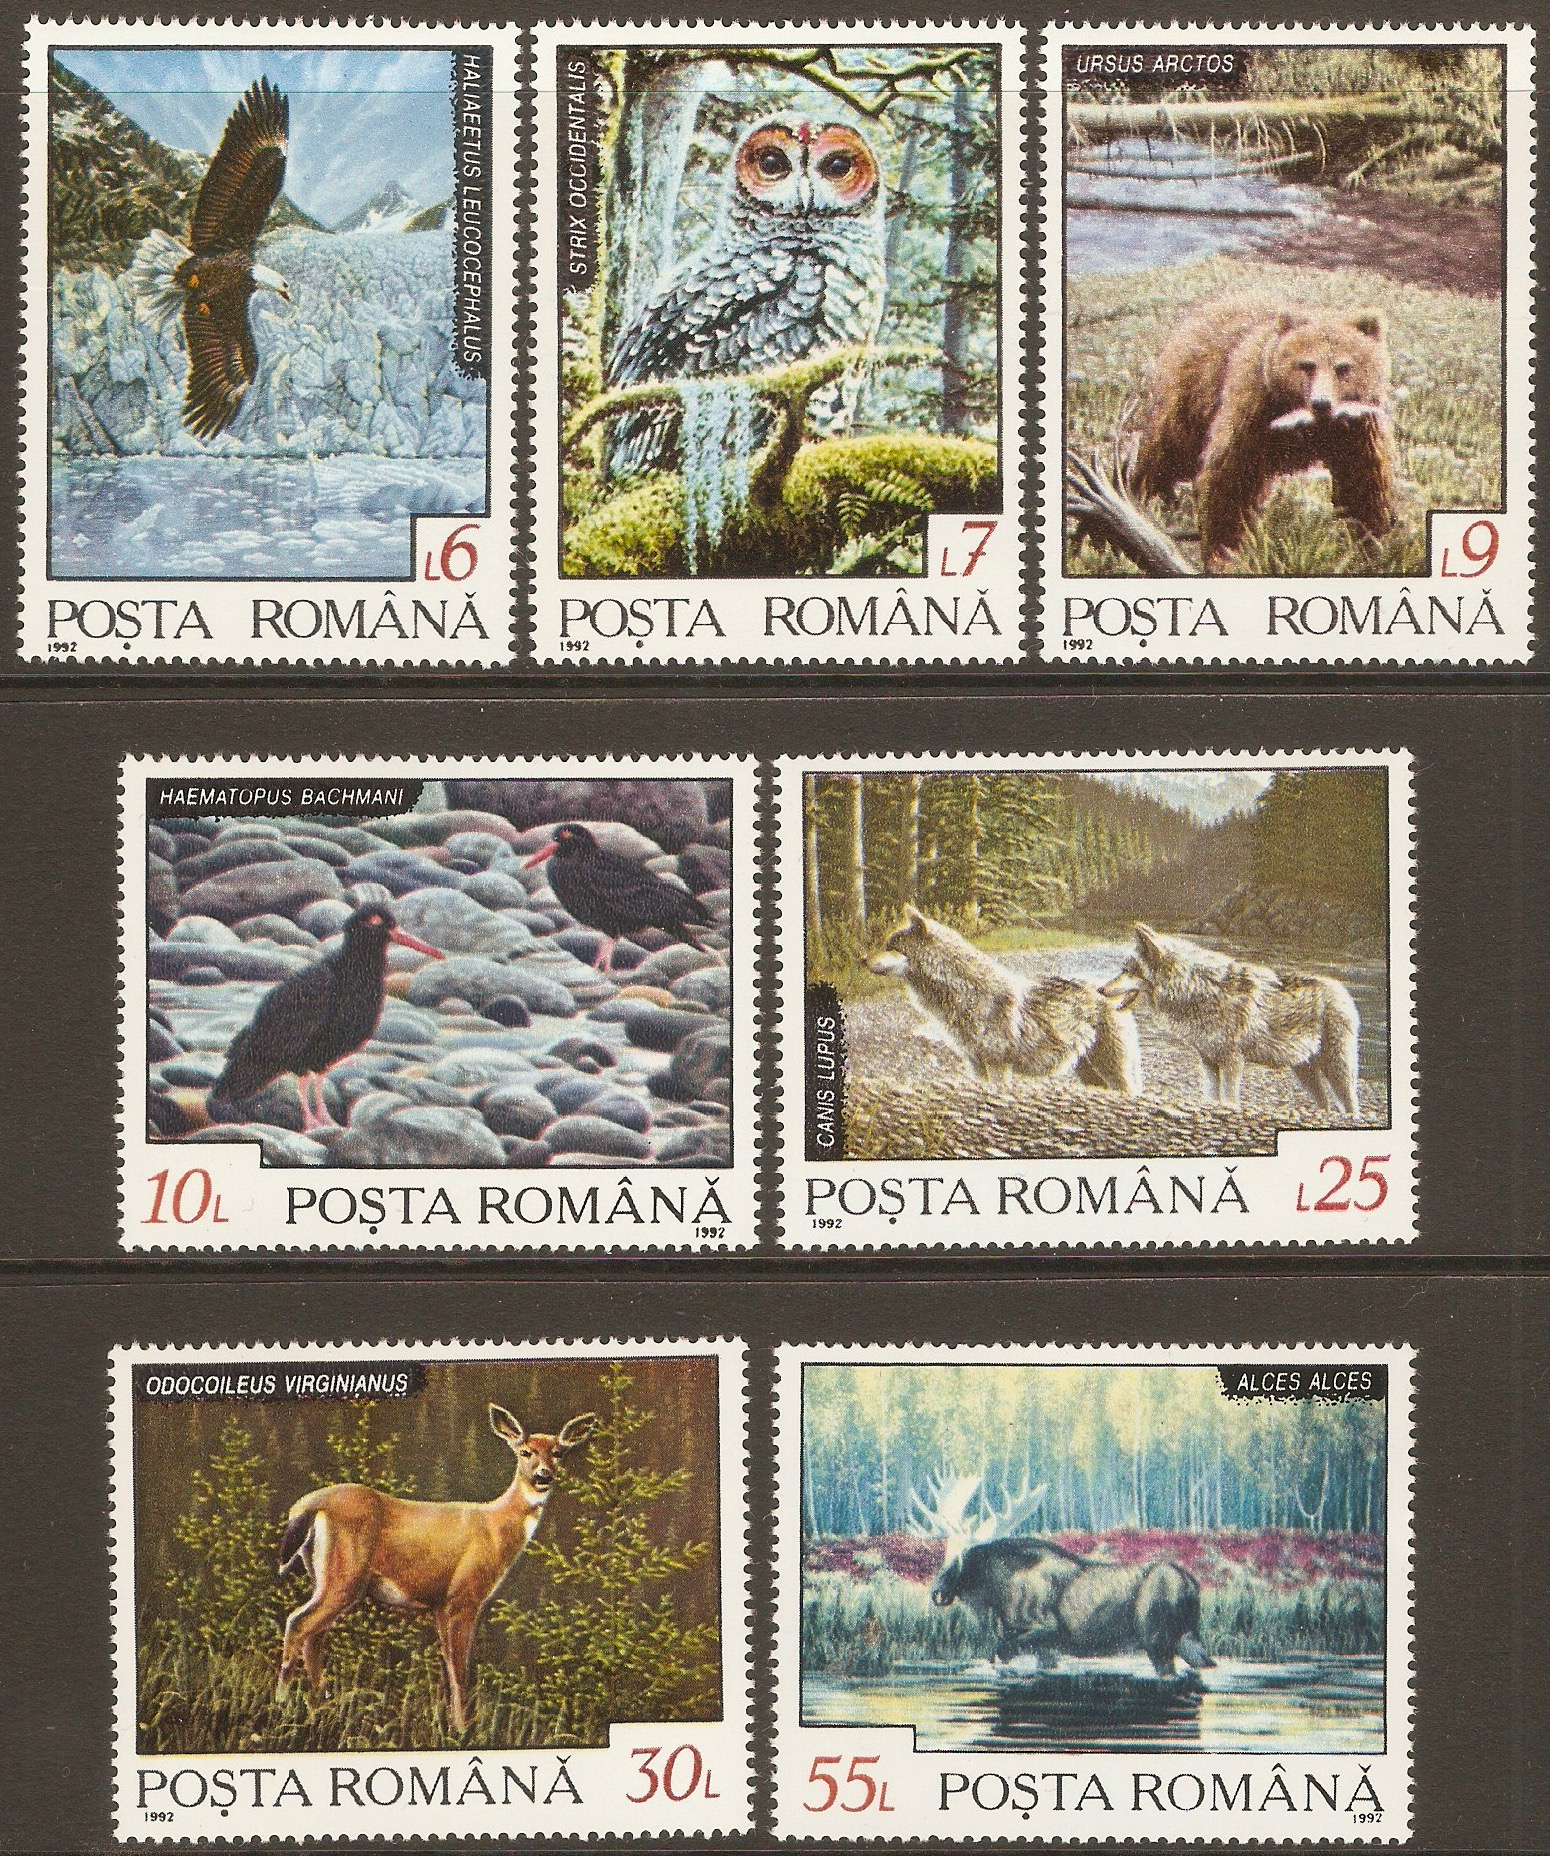 Romania 1992 Animals set. SG5478-SG5484.